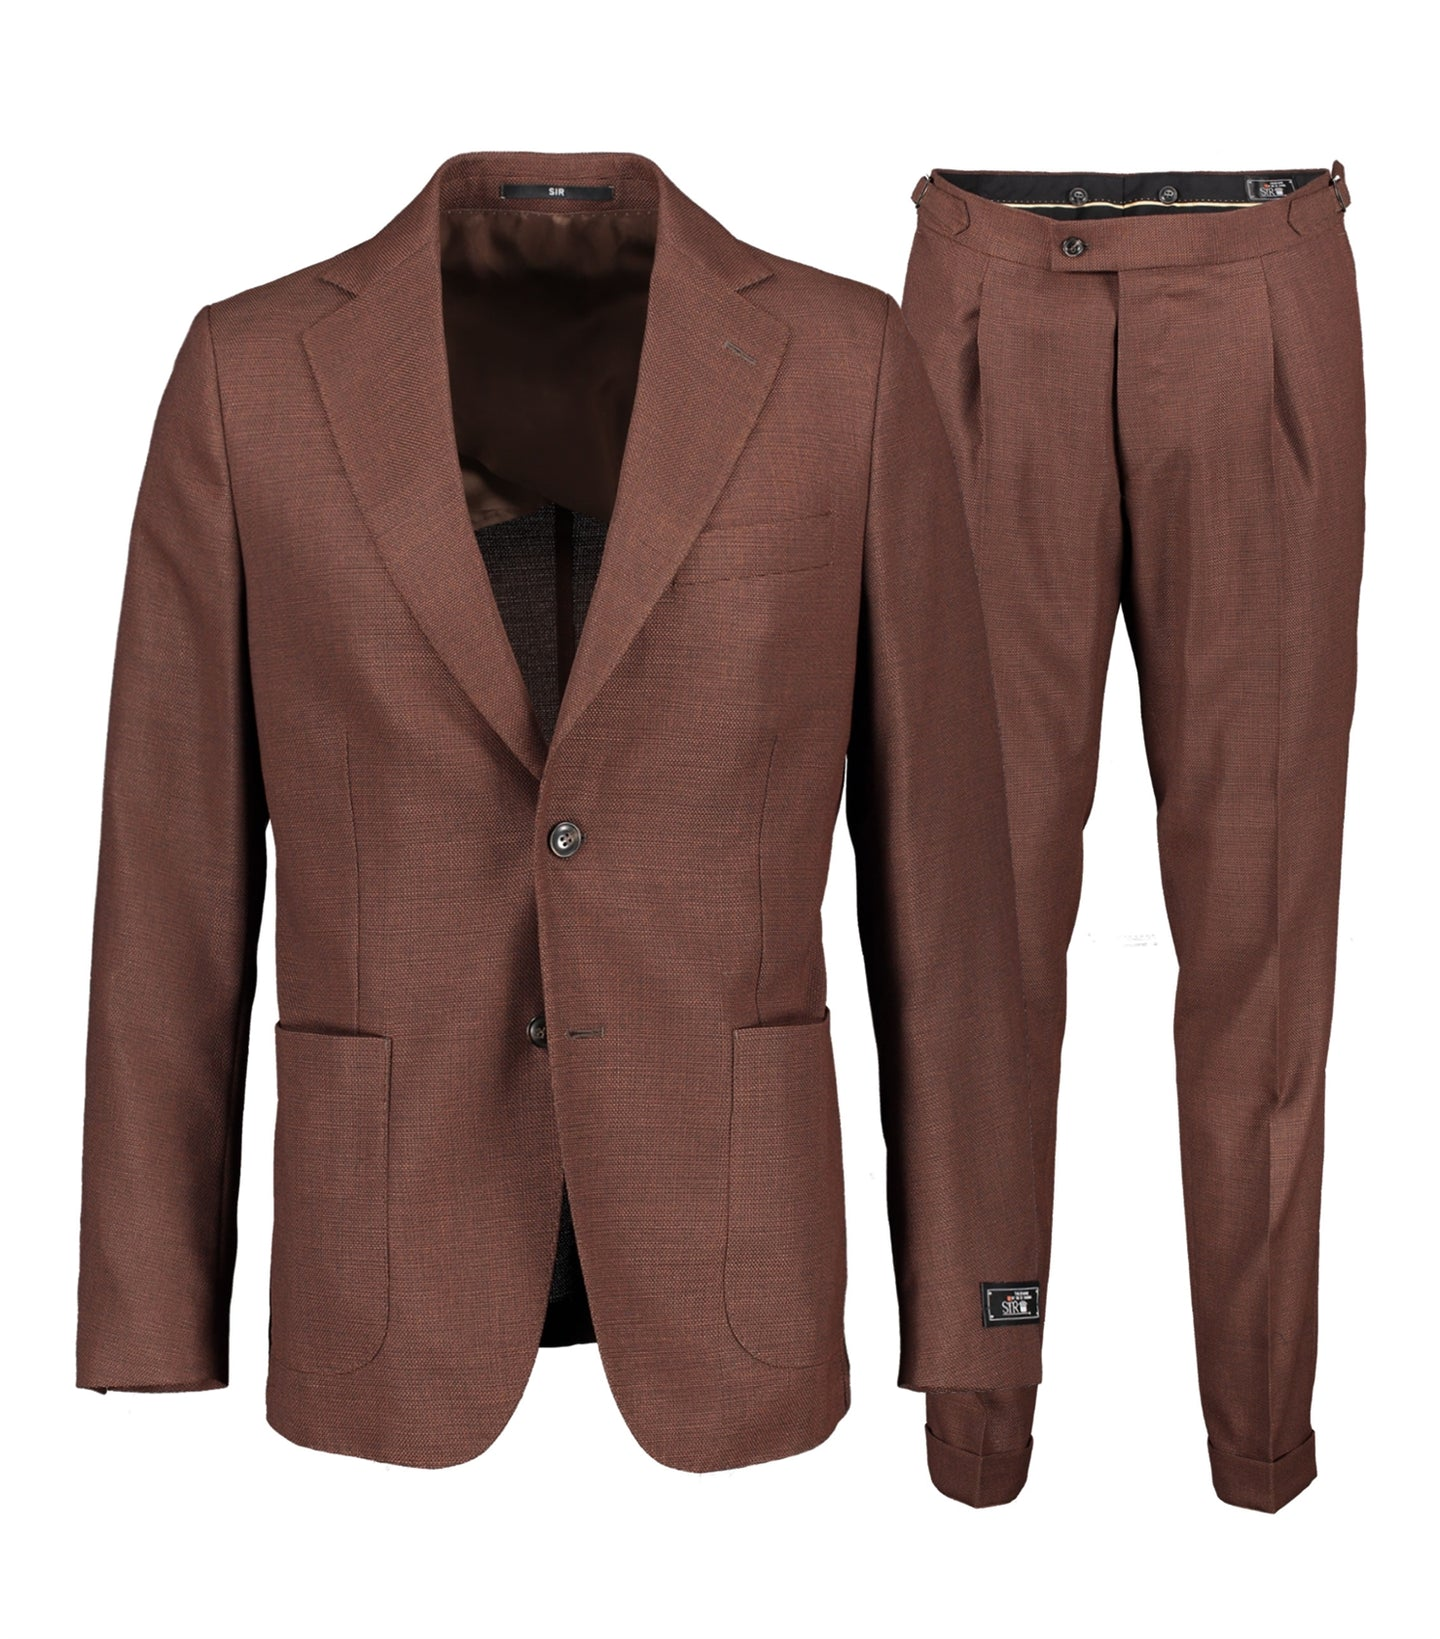 Ness Brown Suit